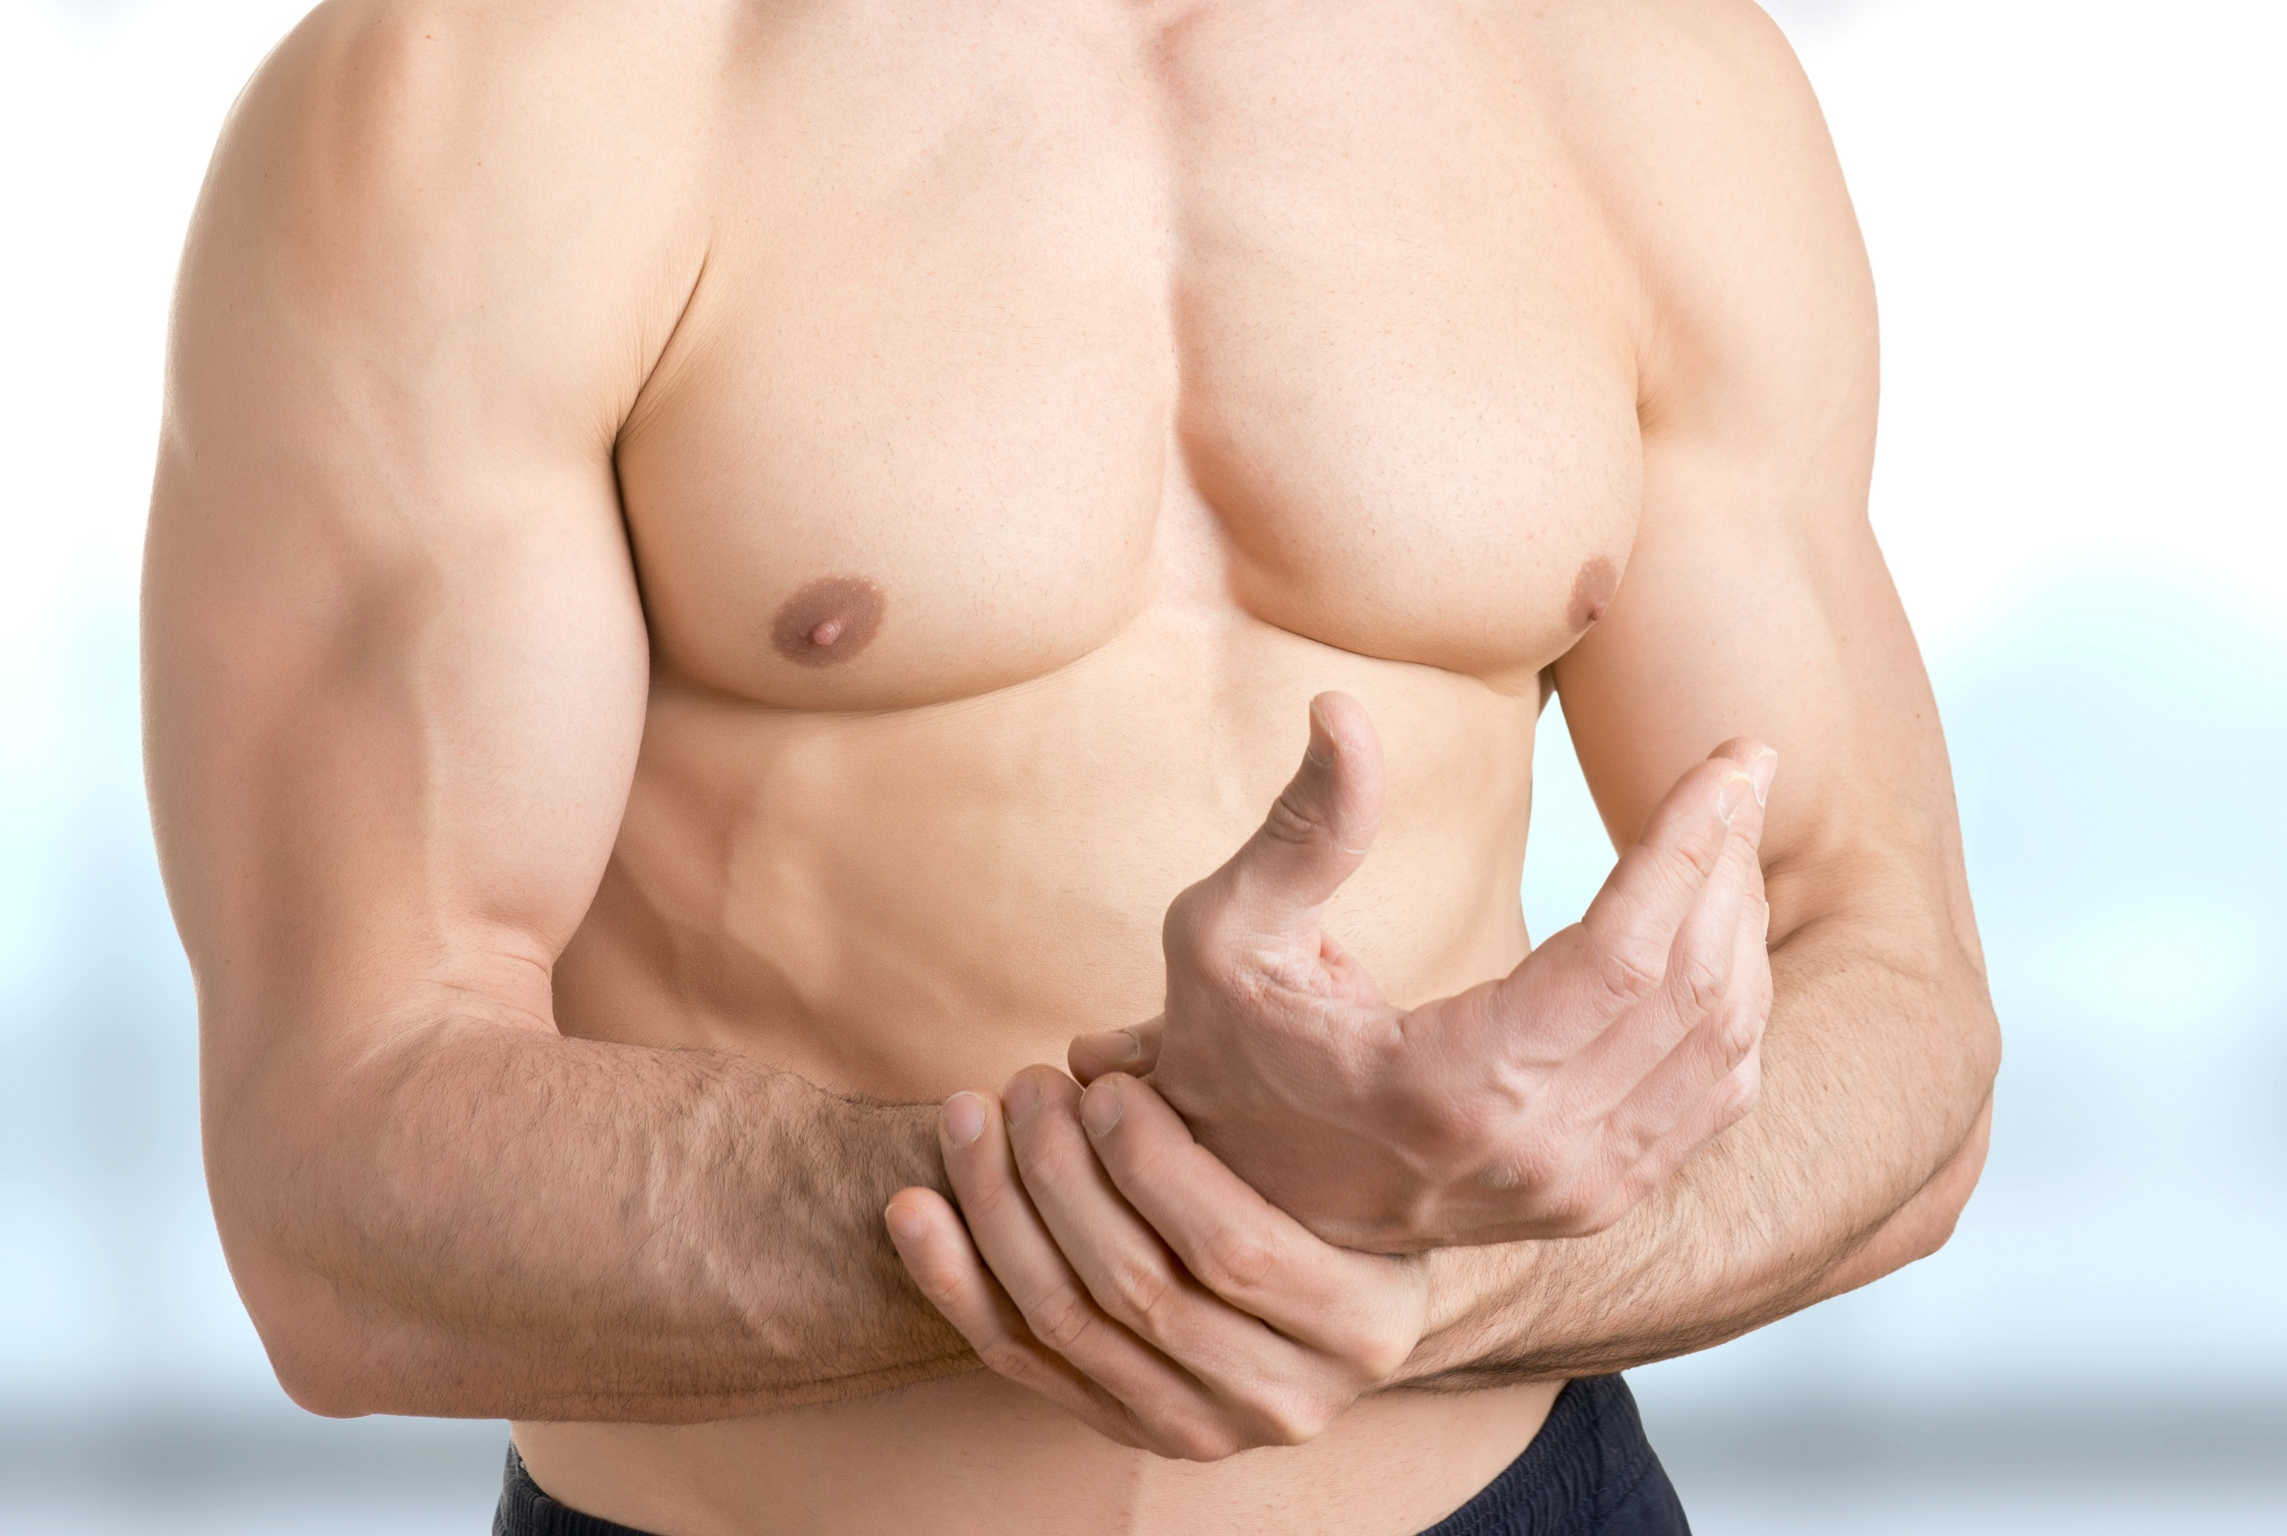 Weightlifting Guidelines for Carpal Tunnel Syndrome: Pulling